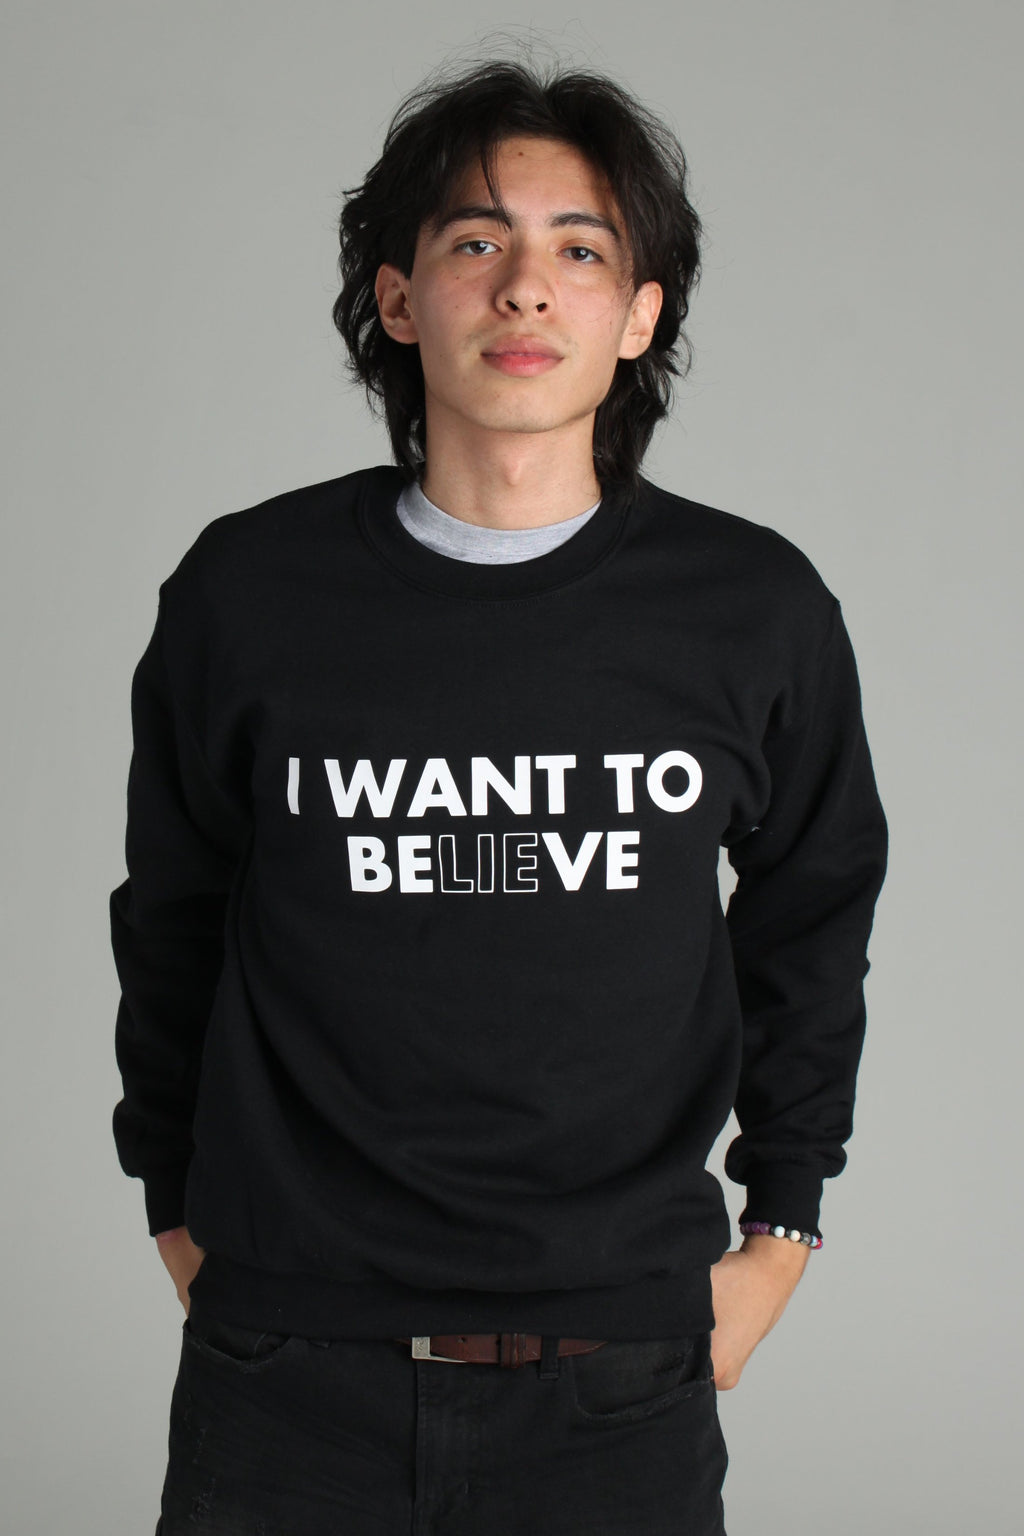 The X Files I Want To Believe Sweatshirt